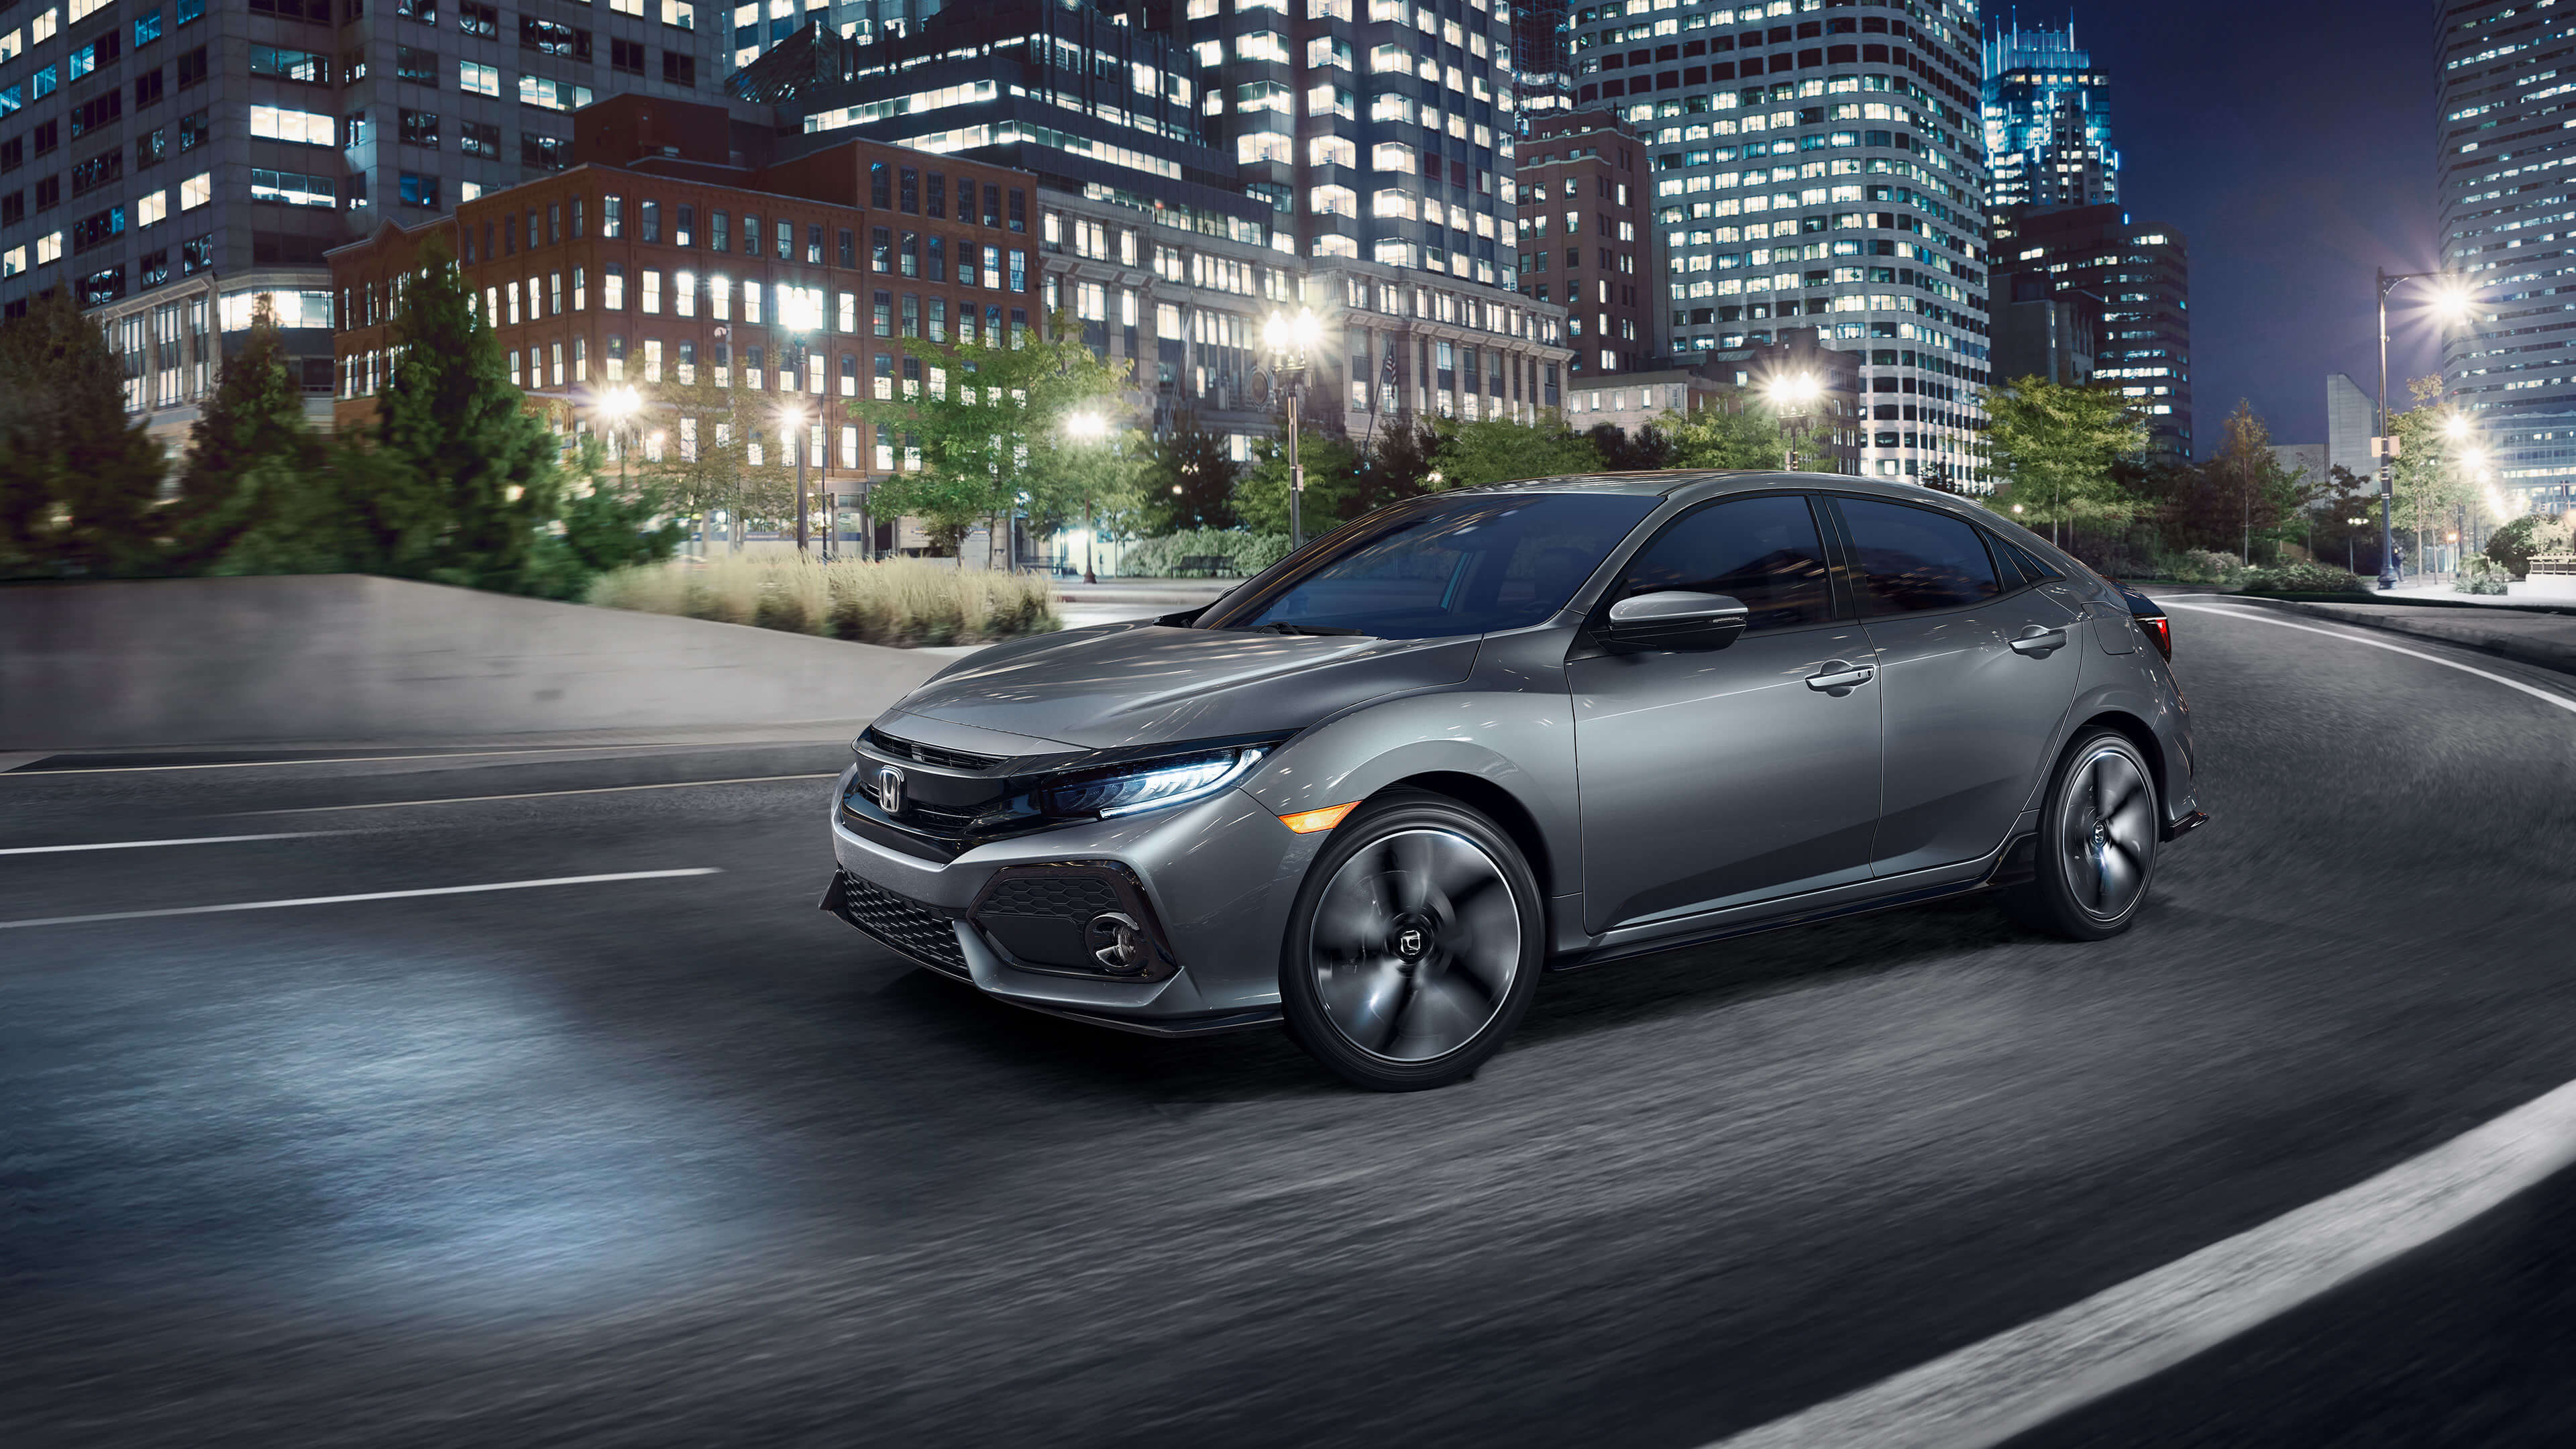 Honda Civic 2017 Exterior Touring